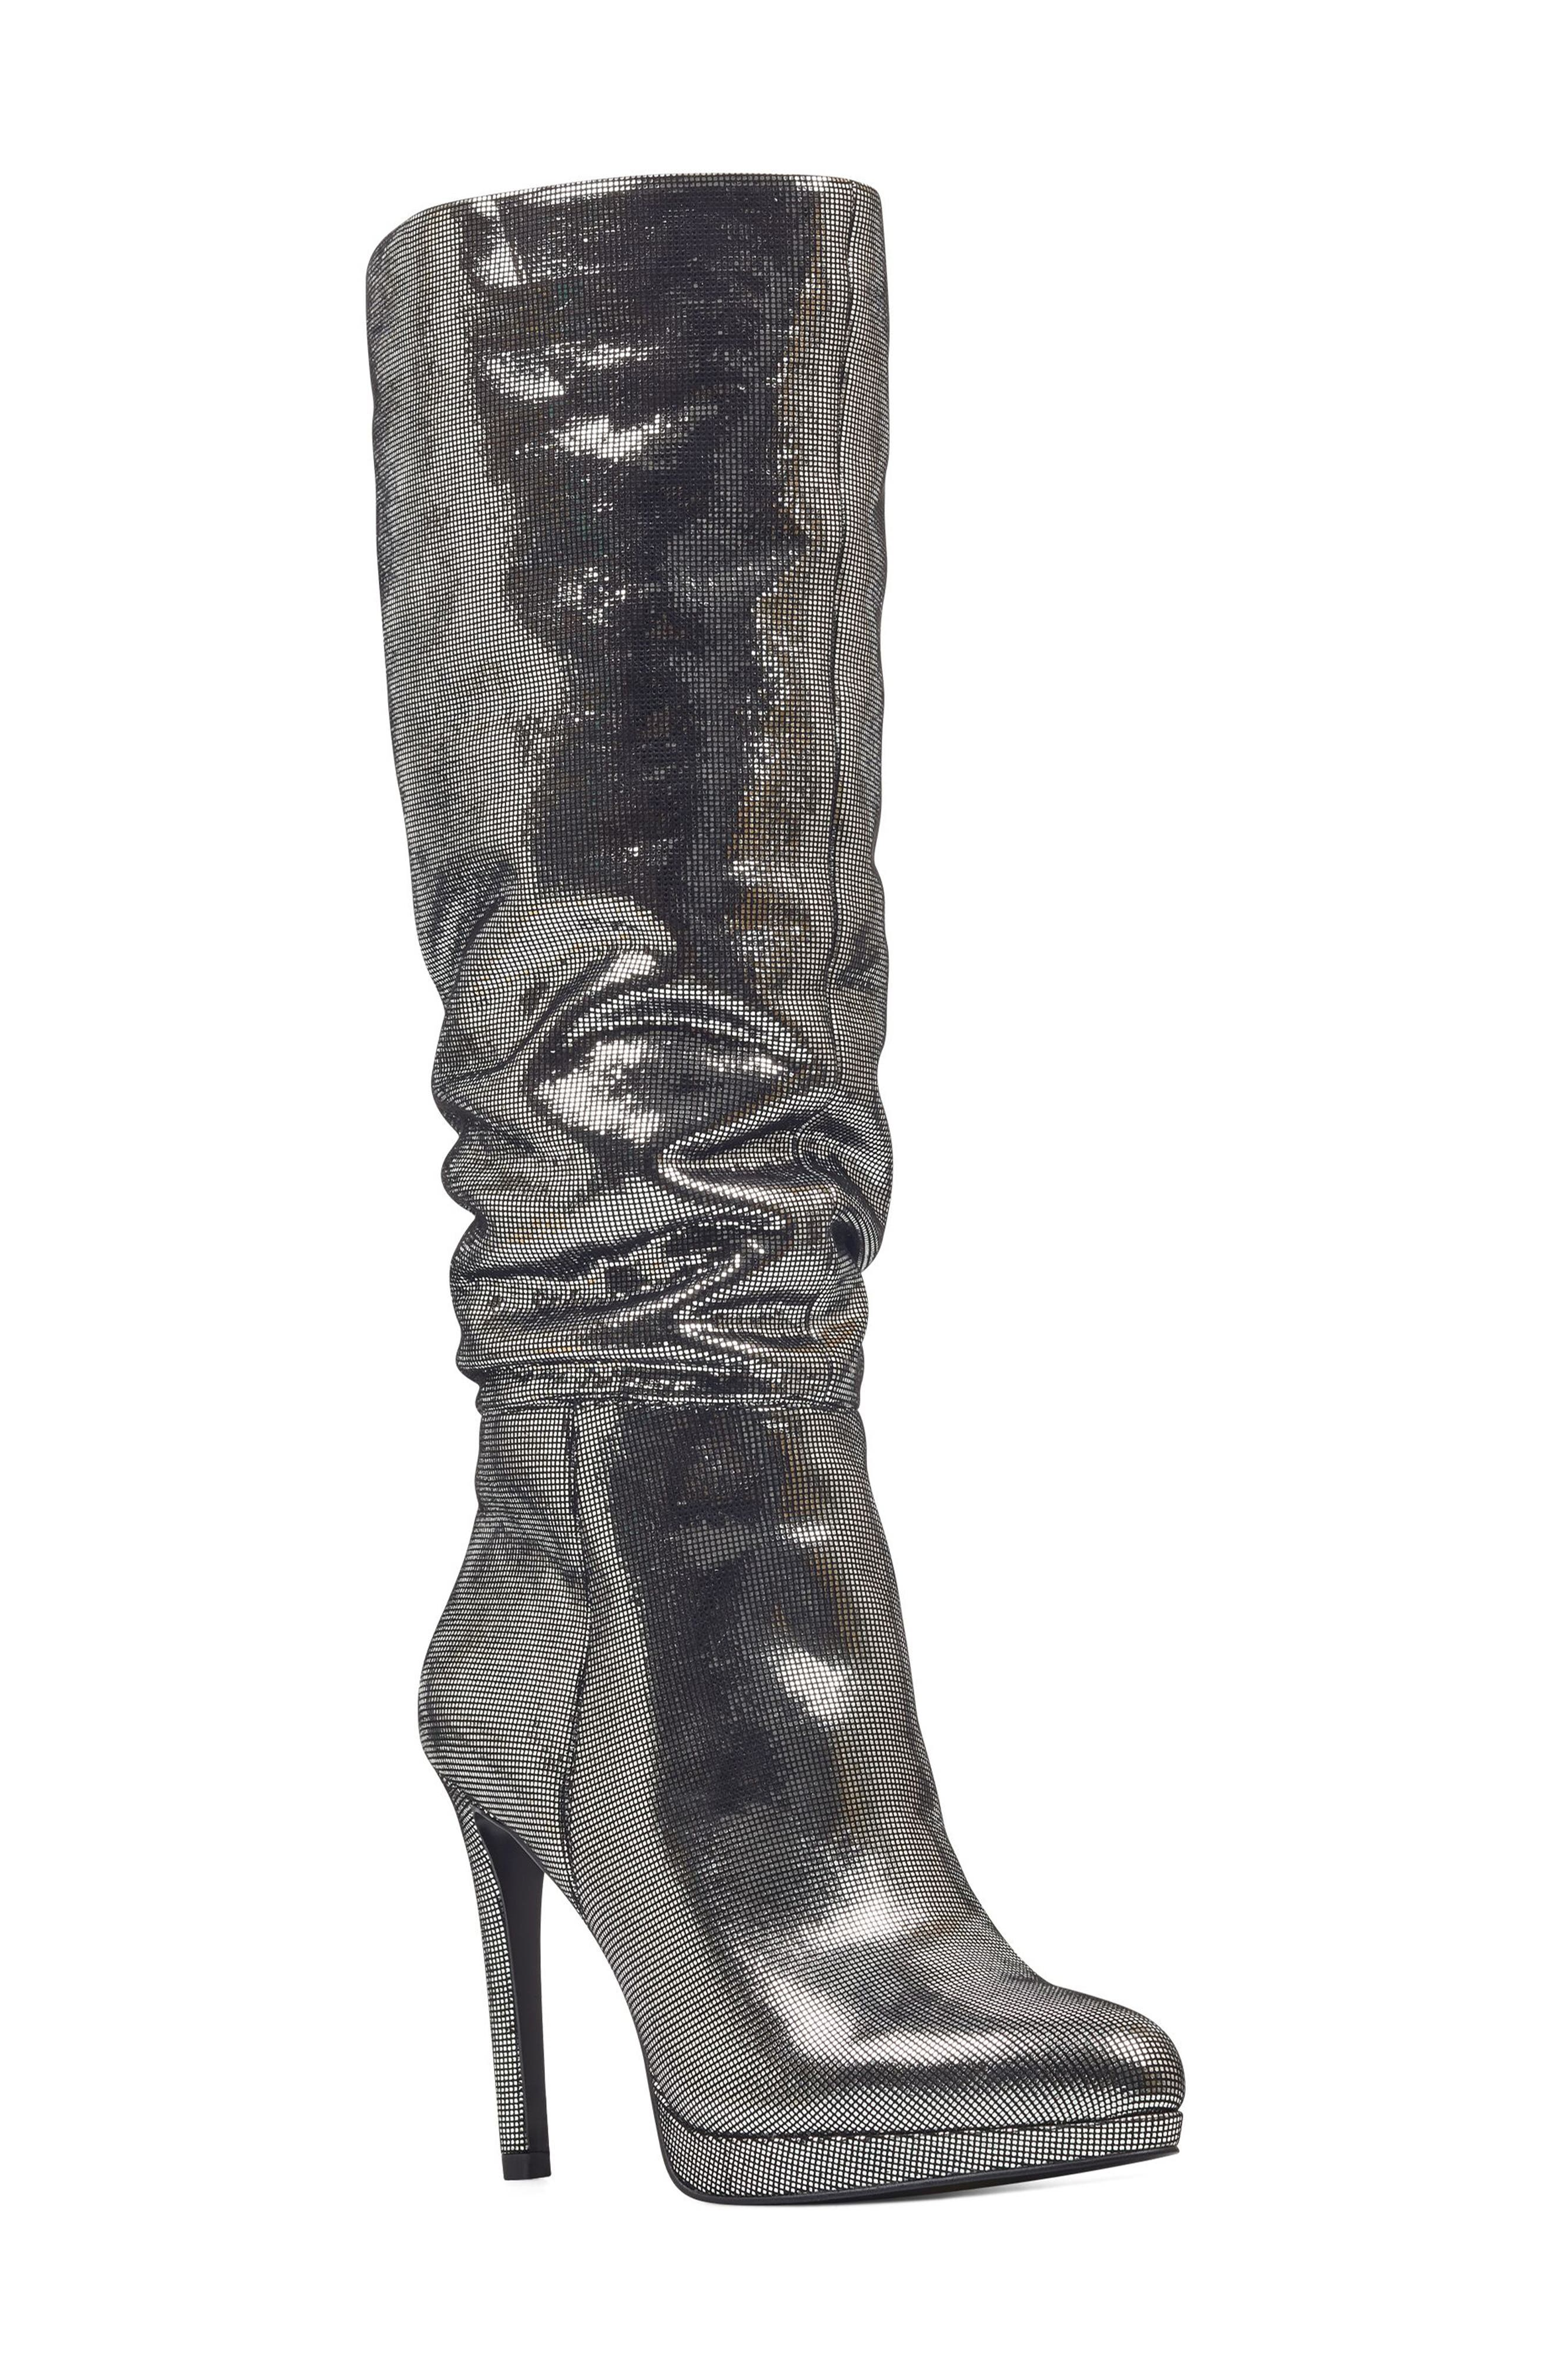 Nine West Quadilyn Knee High Boot, Metallic